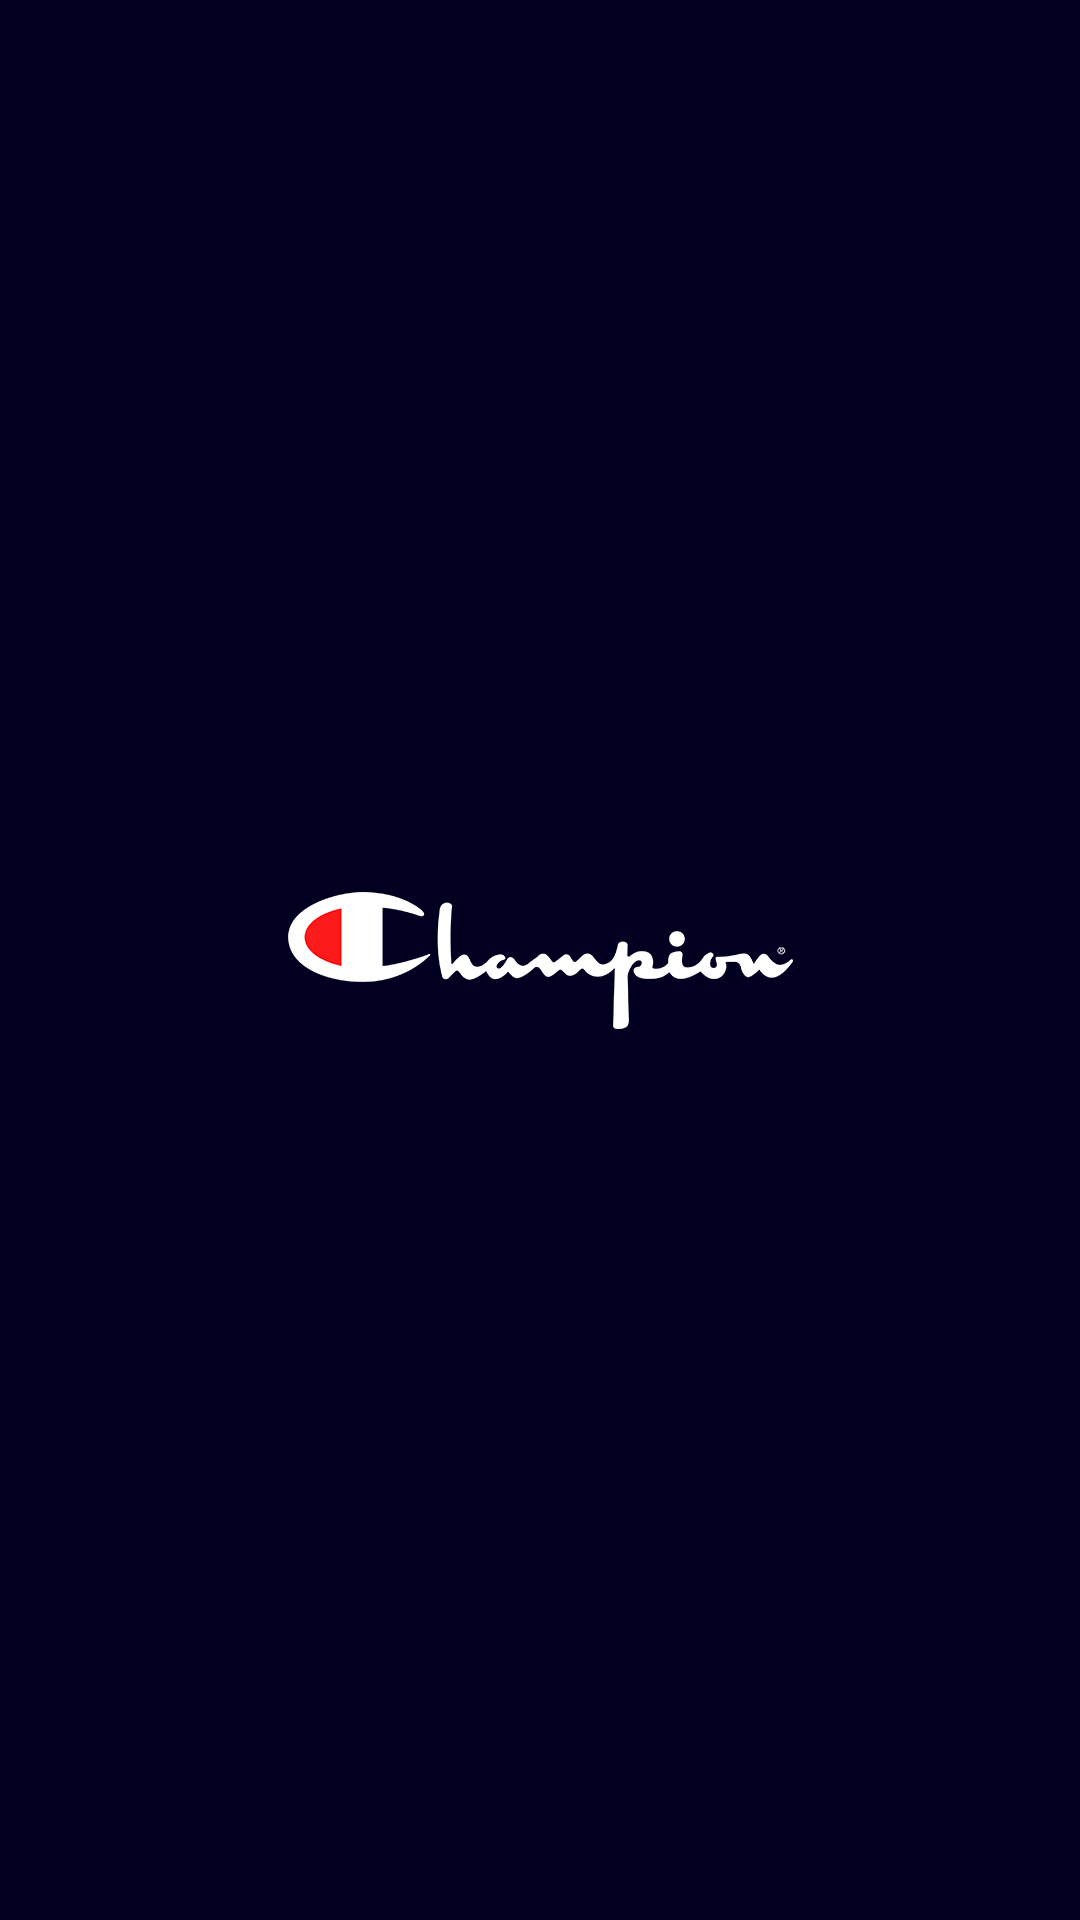 1080x1920 Champion White and Blue in 2019 | Hypebeast wallpaper ...